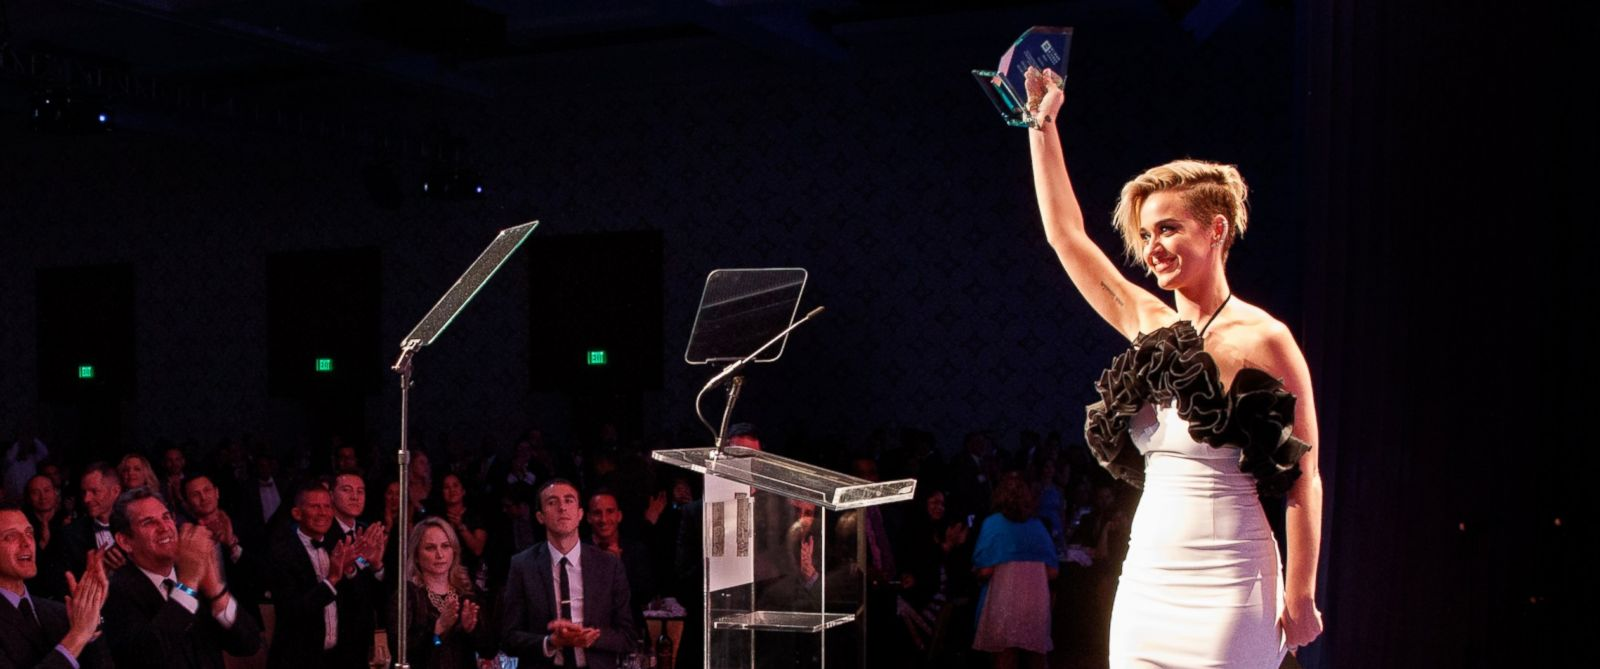 PHOTO: Honoree Katy Perry accepts the HRC National Equality Award onstage at The Human Rights Campaign 2017 Los Angeles Gala Dinner at JW Marriott Los Angeles at L.A. LIVE on March 18, 2017 in Los Angeles.